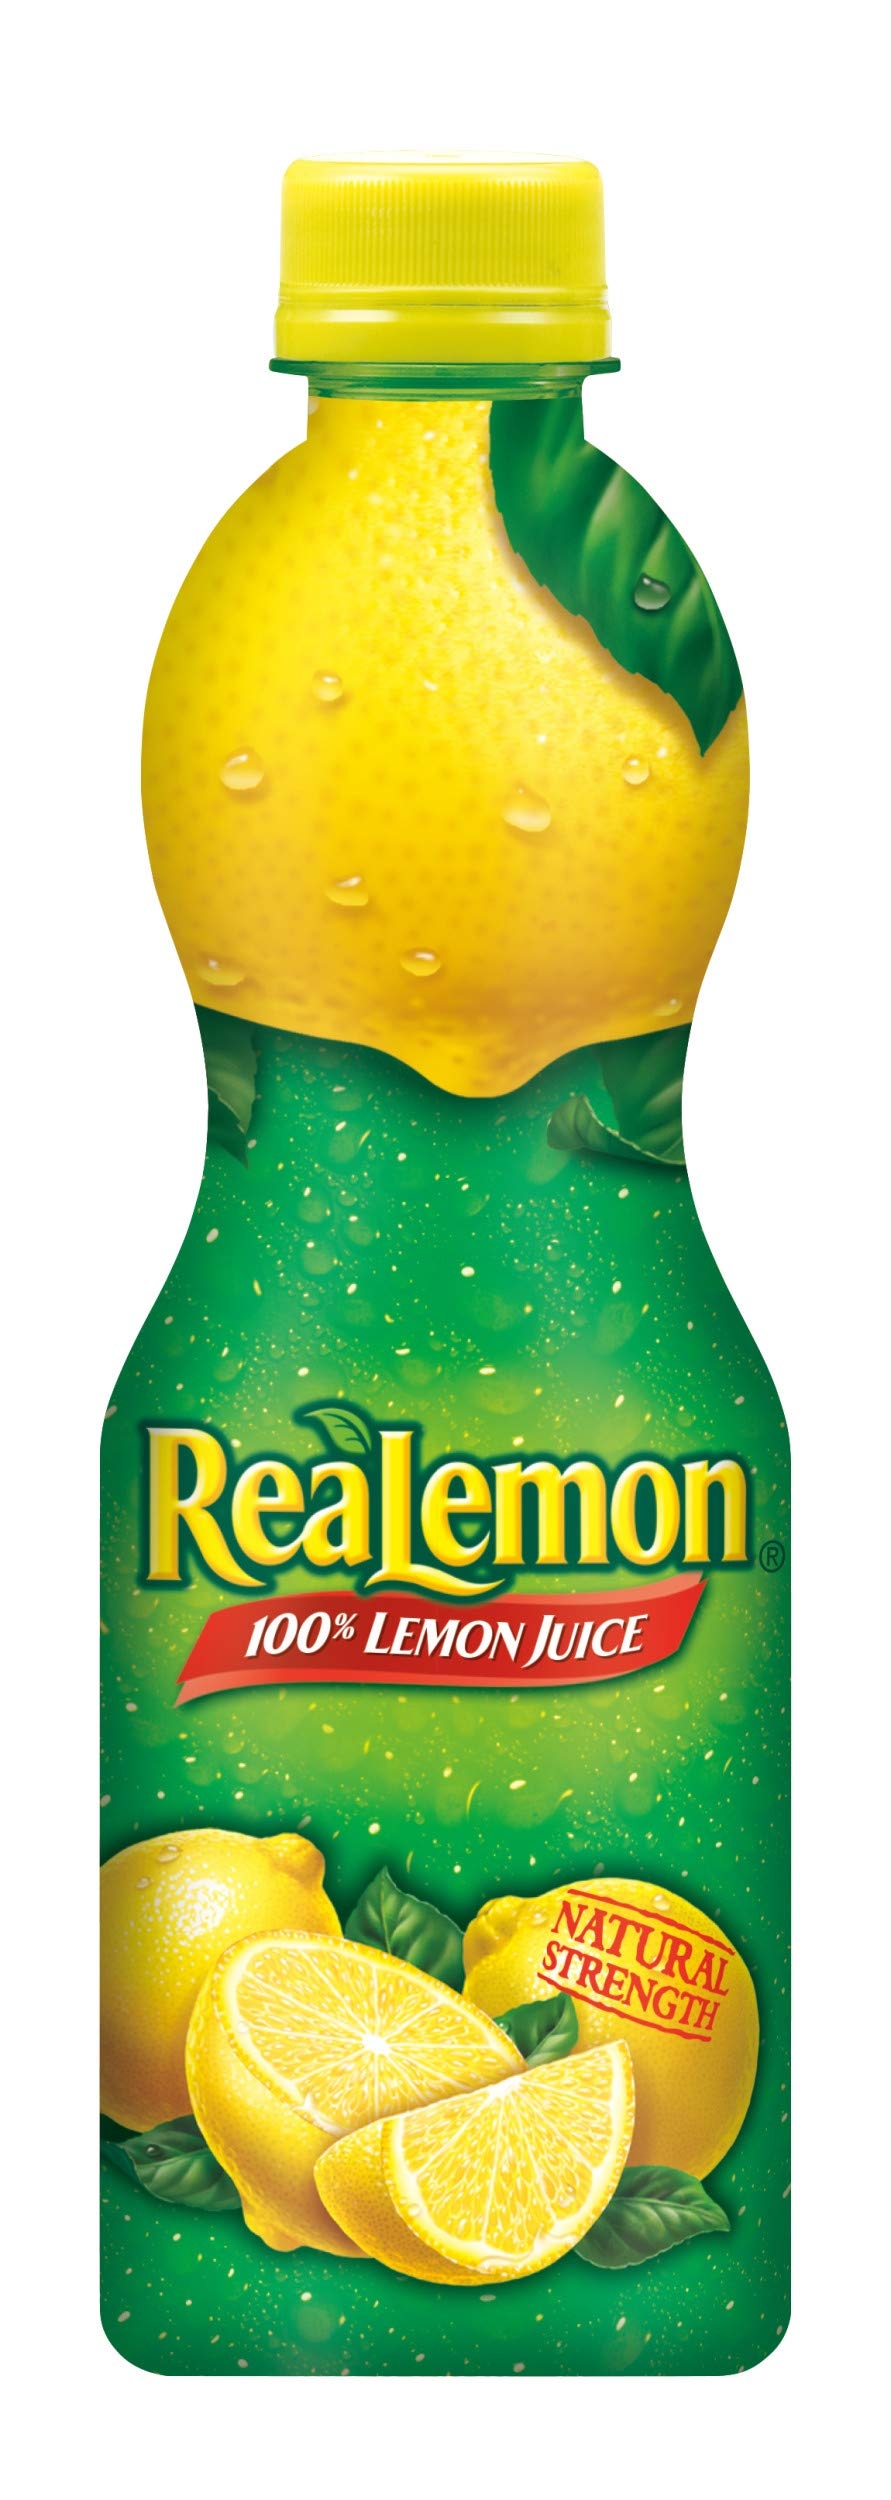 ReaLemon 100% Lemon Juice, 8 Fluid Ounce Bottle 1 One 8 fluid ounce bottle 100% lemon juice from concentrate Great for use in recipes and beverages